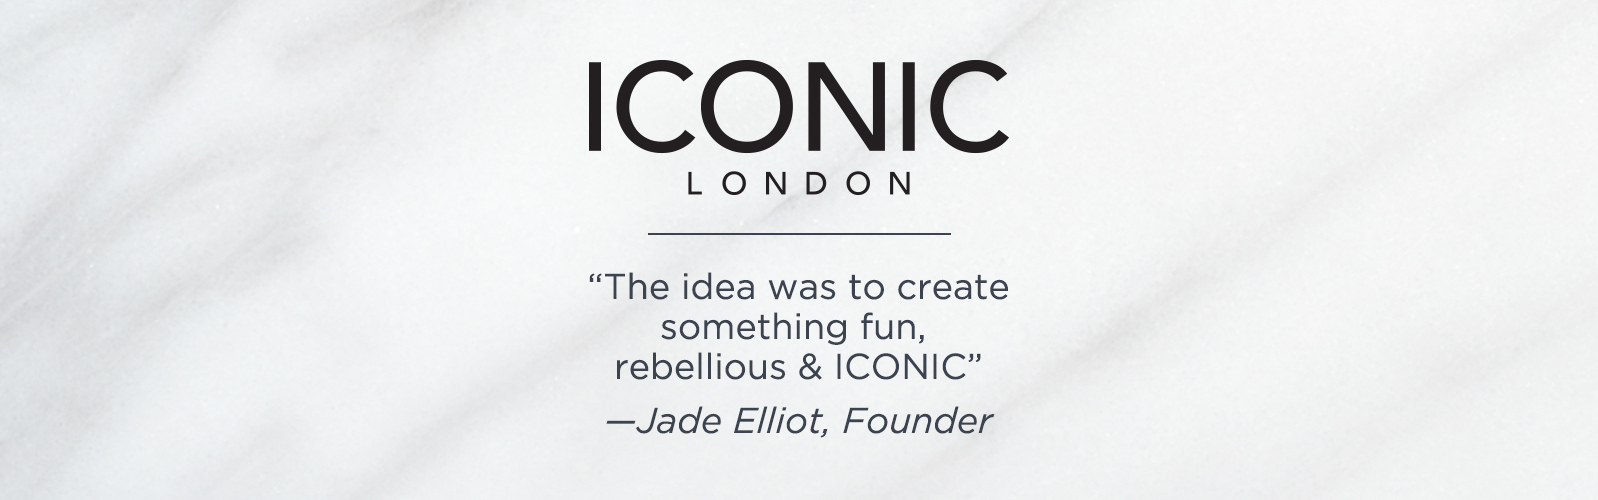 ICONIC London. ''The idea was to create something fun, rebellious & ICONIC'' —Jade Elliot, Founder